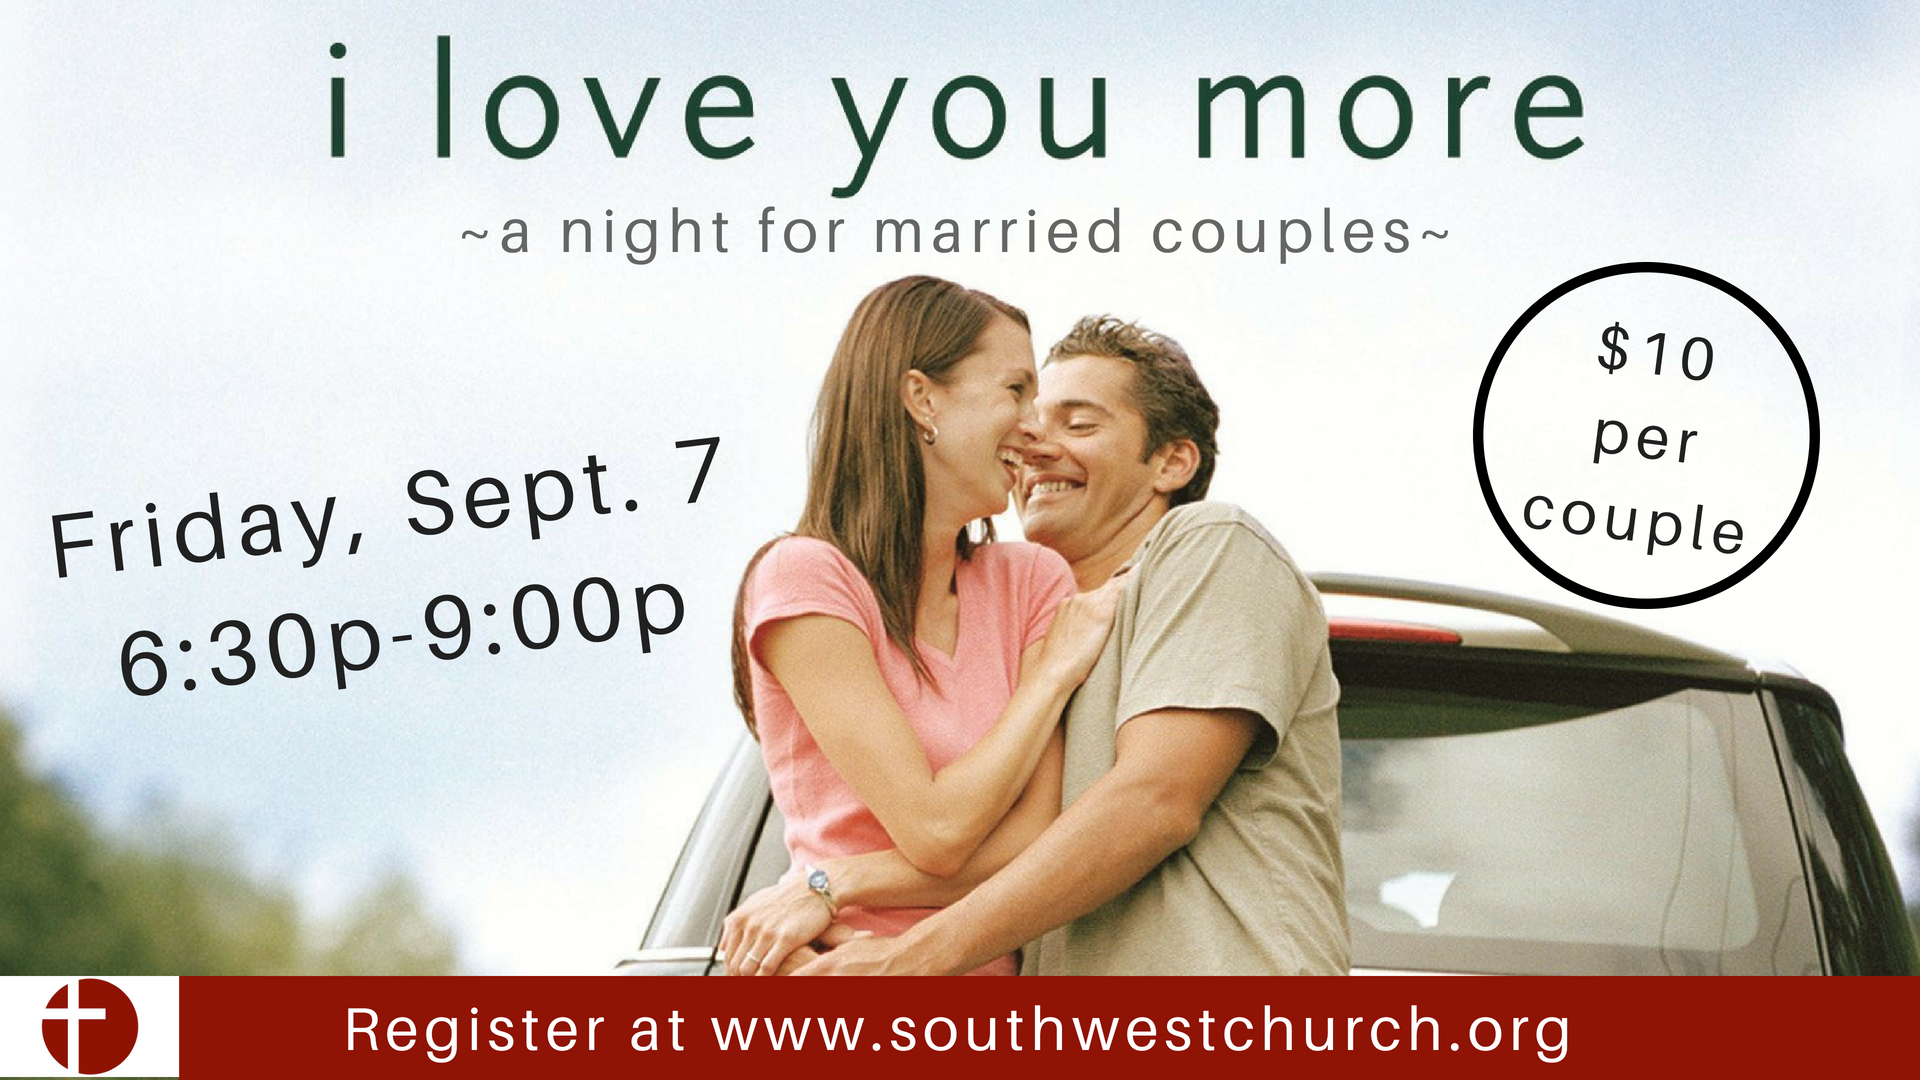 A night for married couples